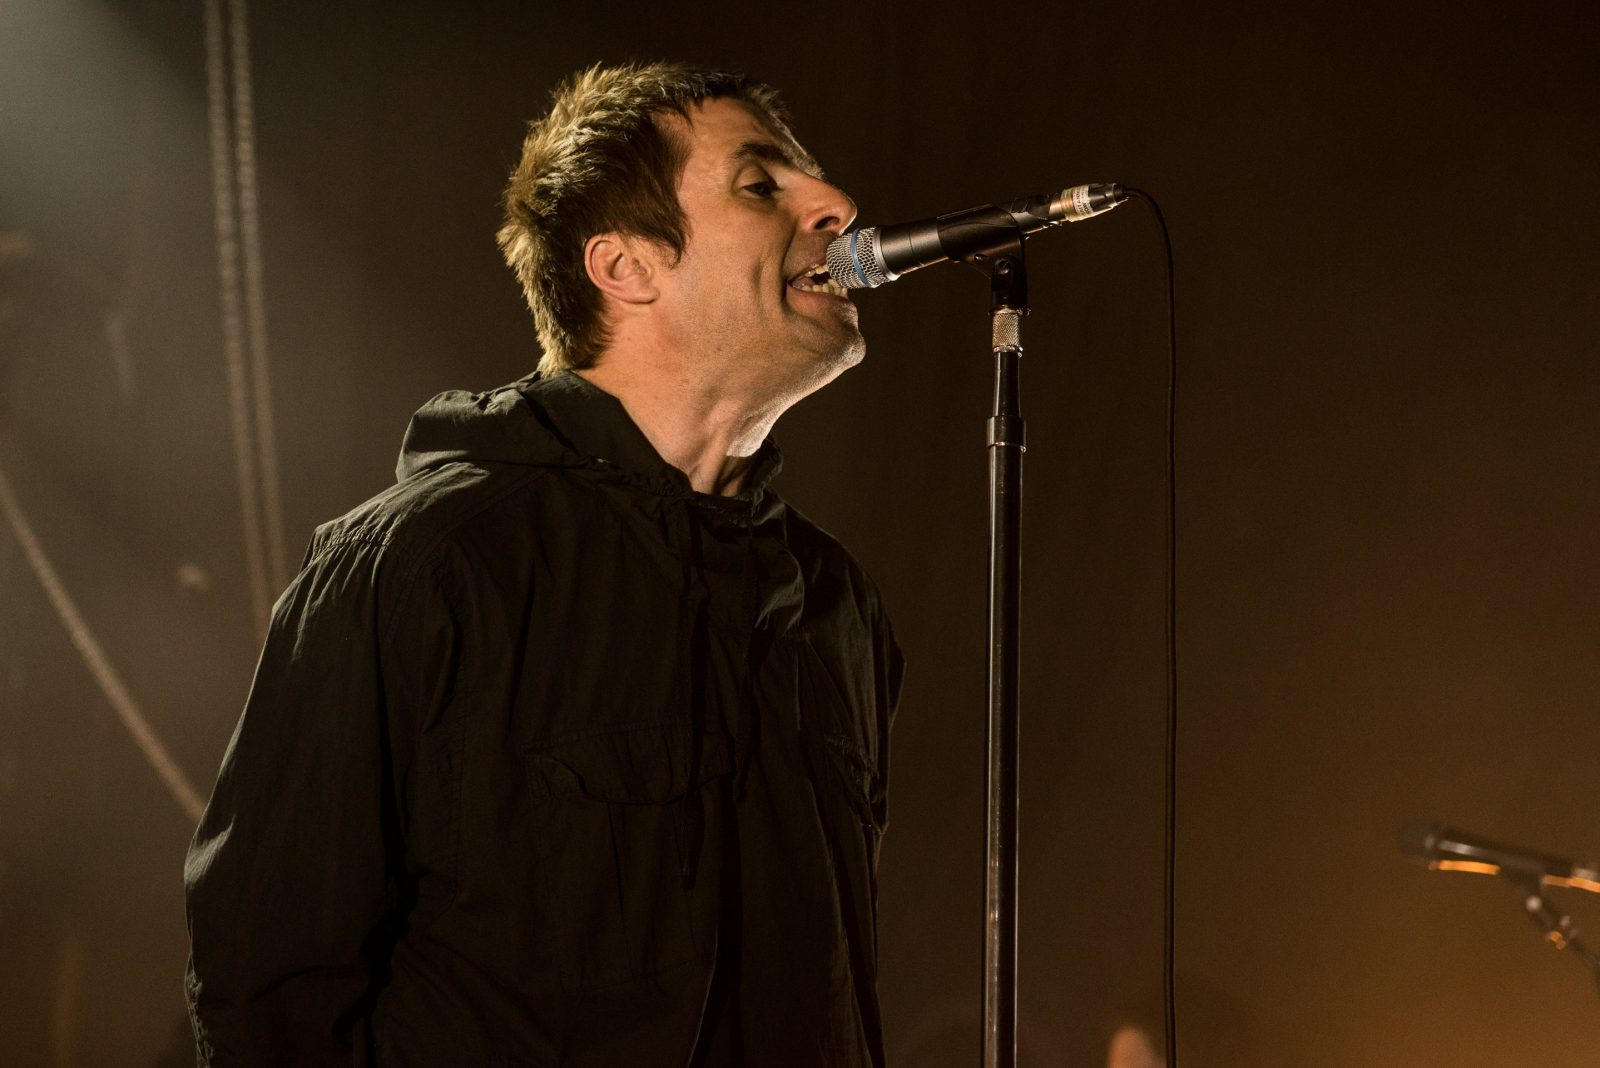 An evening with: Liam Gallagher